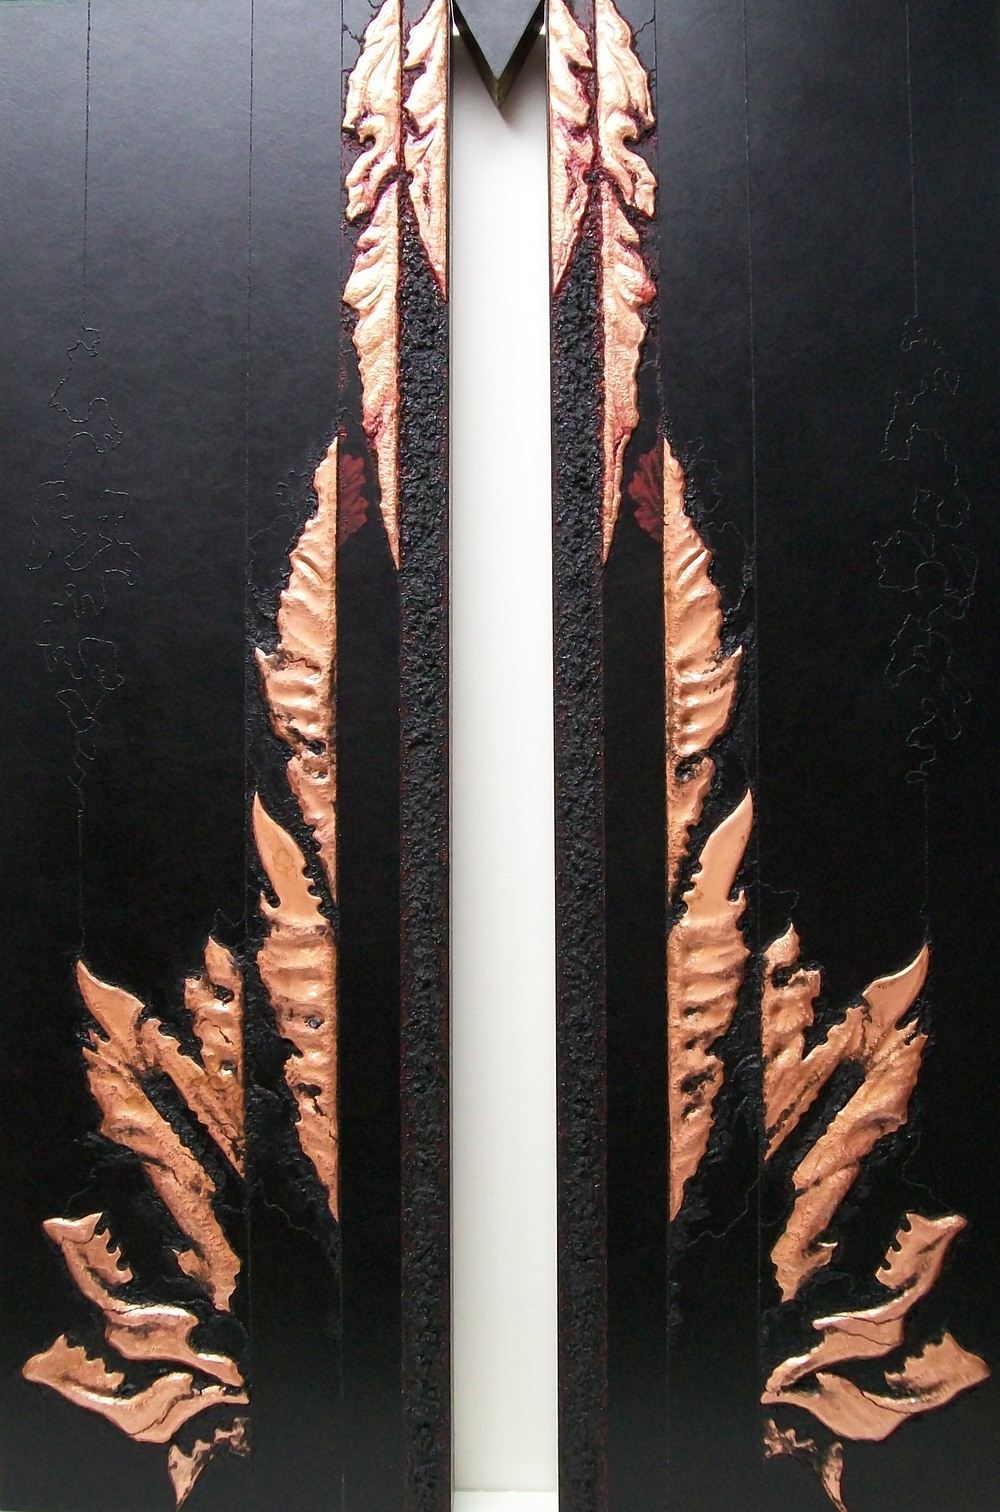 SHAKTI TRIPTYCH, Tamas , 2013.  Right image, copper repoussé elements, mineral particles and threads and 23K on archival wood panel.   Collection of JoAnn and Robert D. Huth.